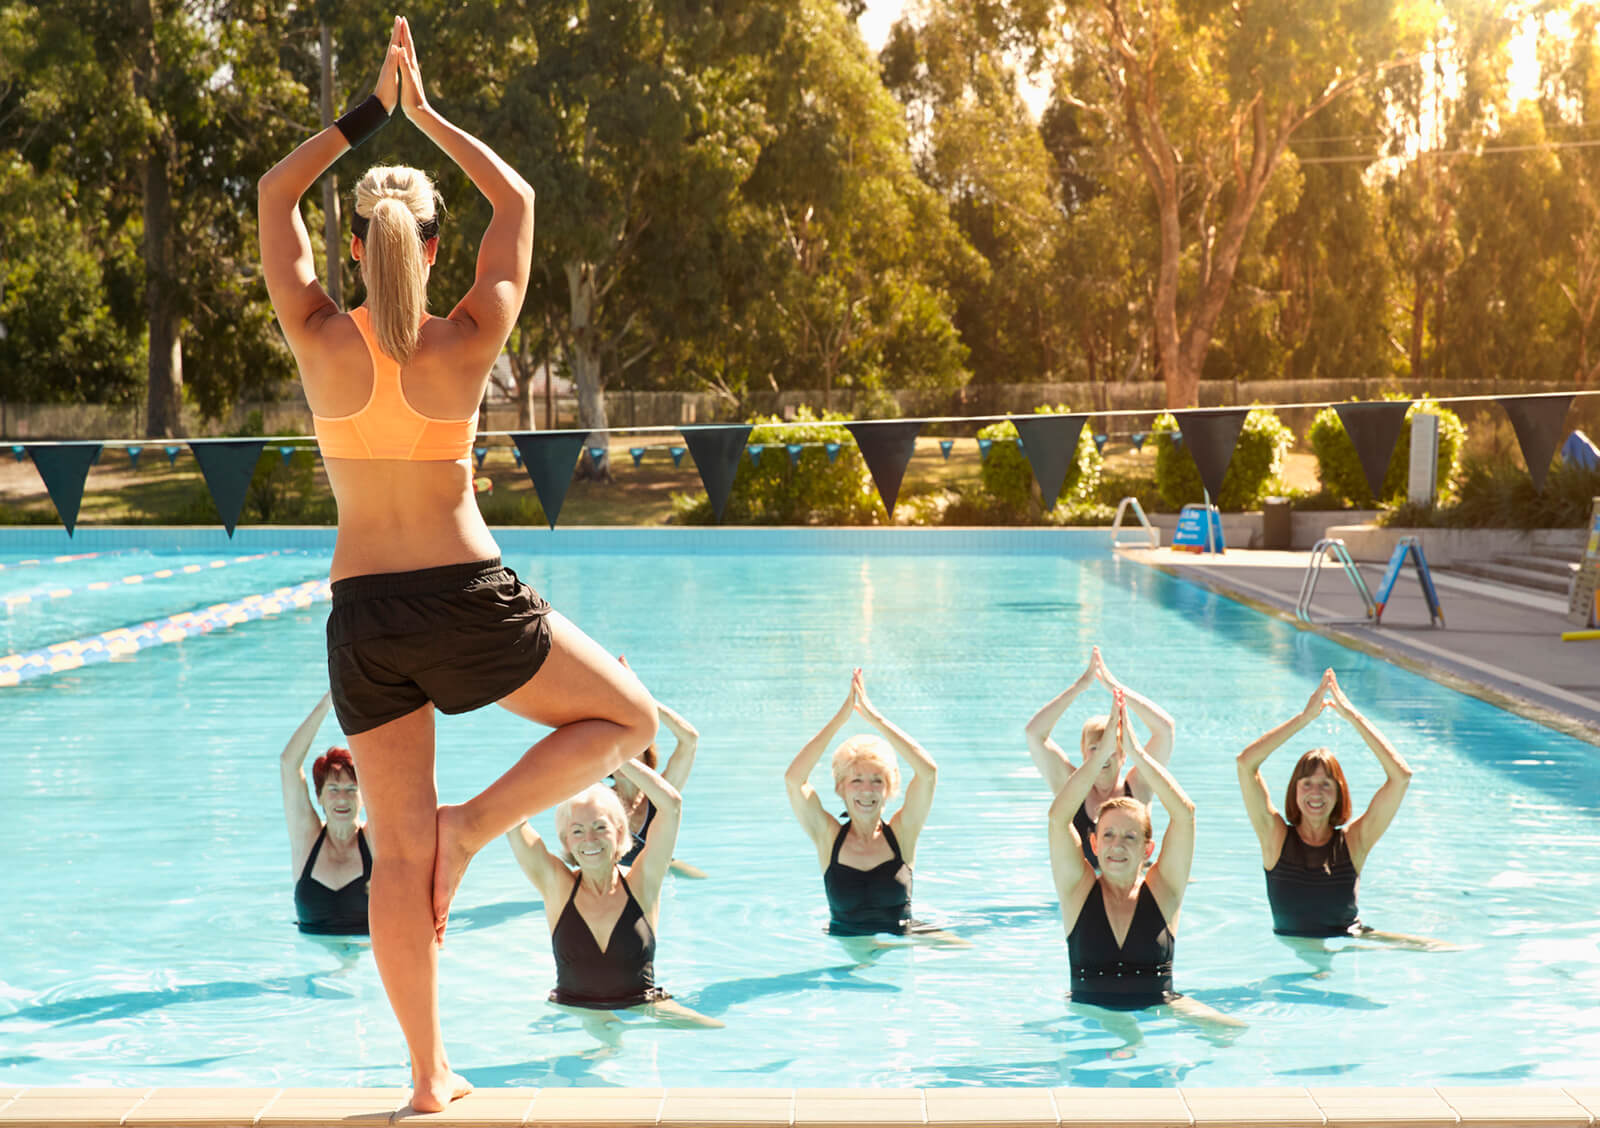 Yoga In The Pool is Easy To Do